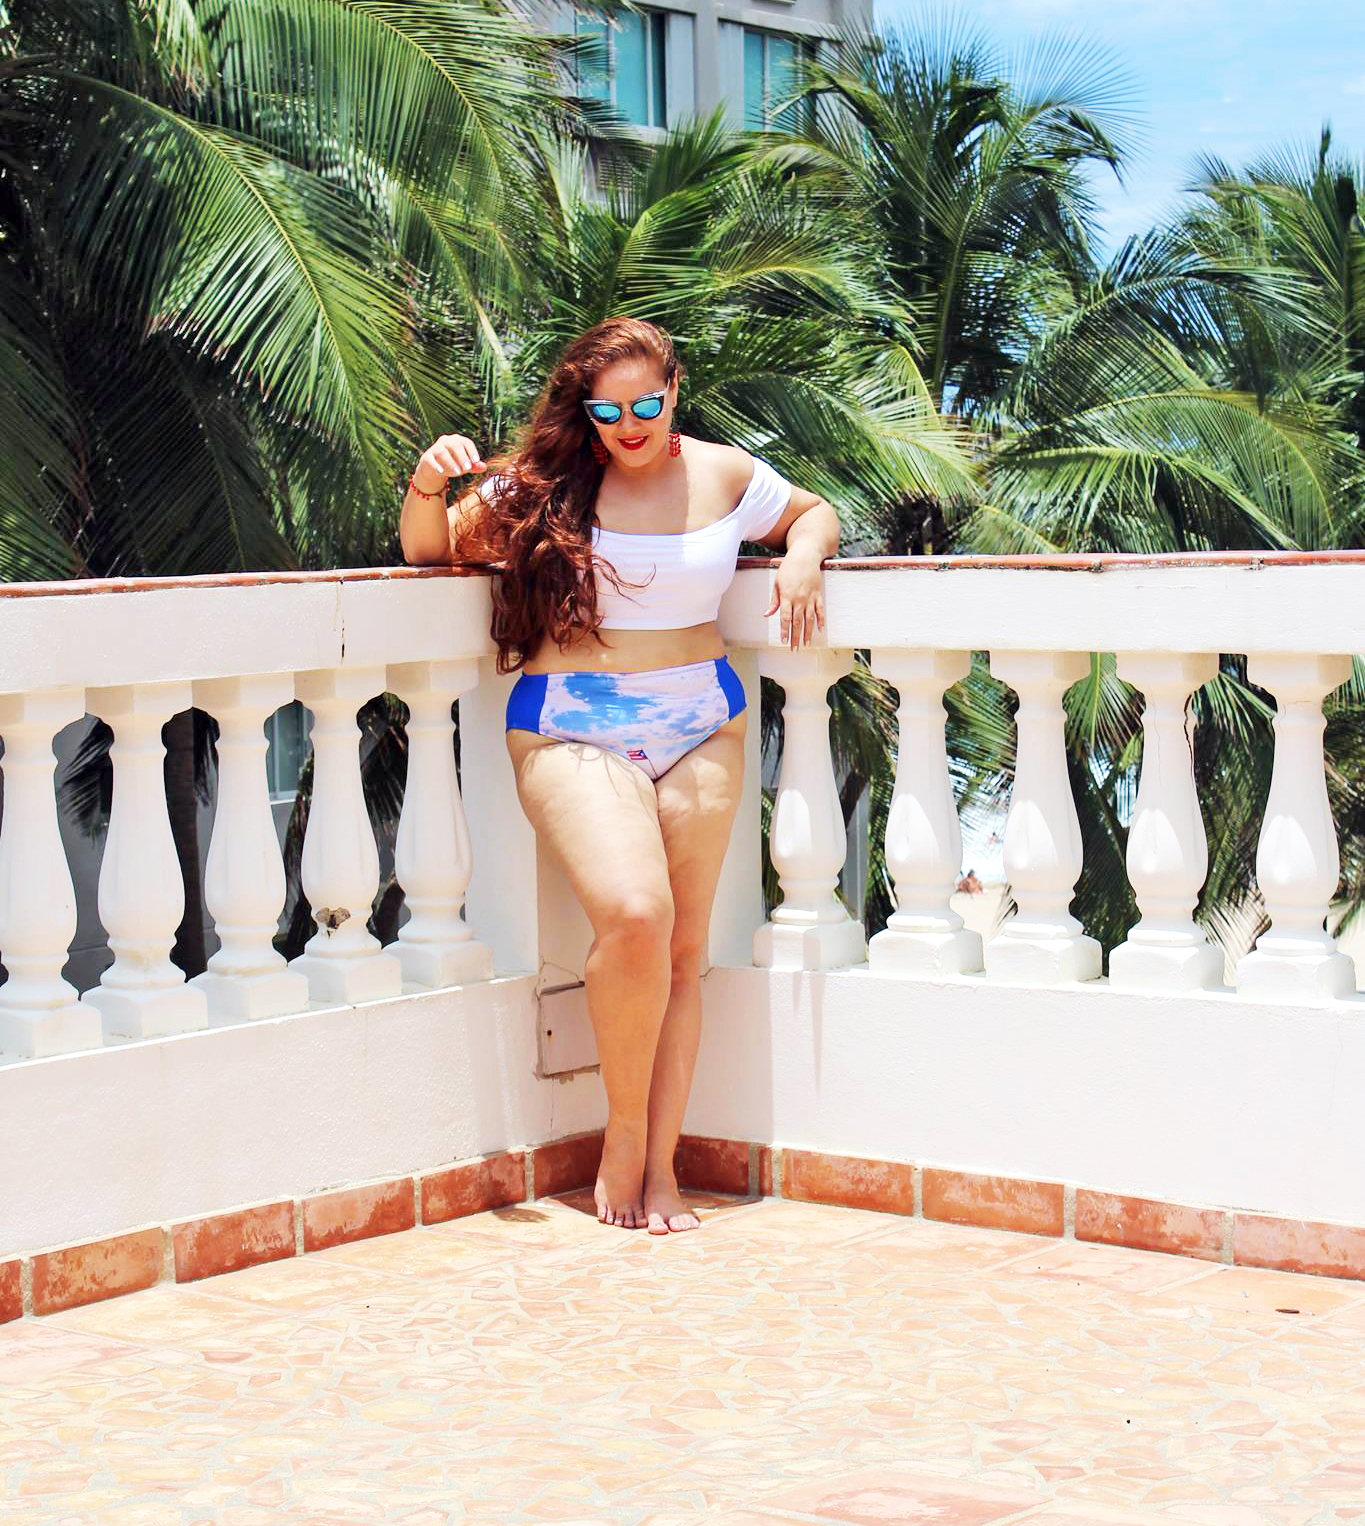 Swimsuit: Tommie Hernández Crash Boat Bikini. $95.00. Size XL. Made in Puerto Rico. Sunglasses:  DeLarge Shop